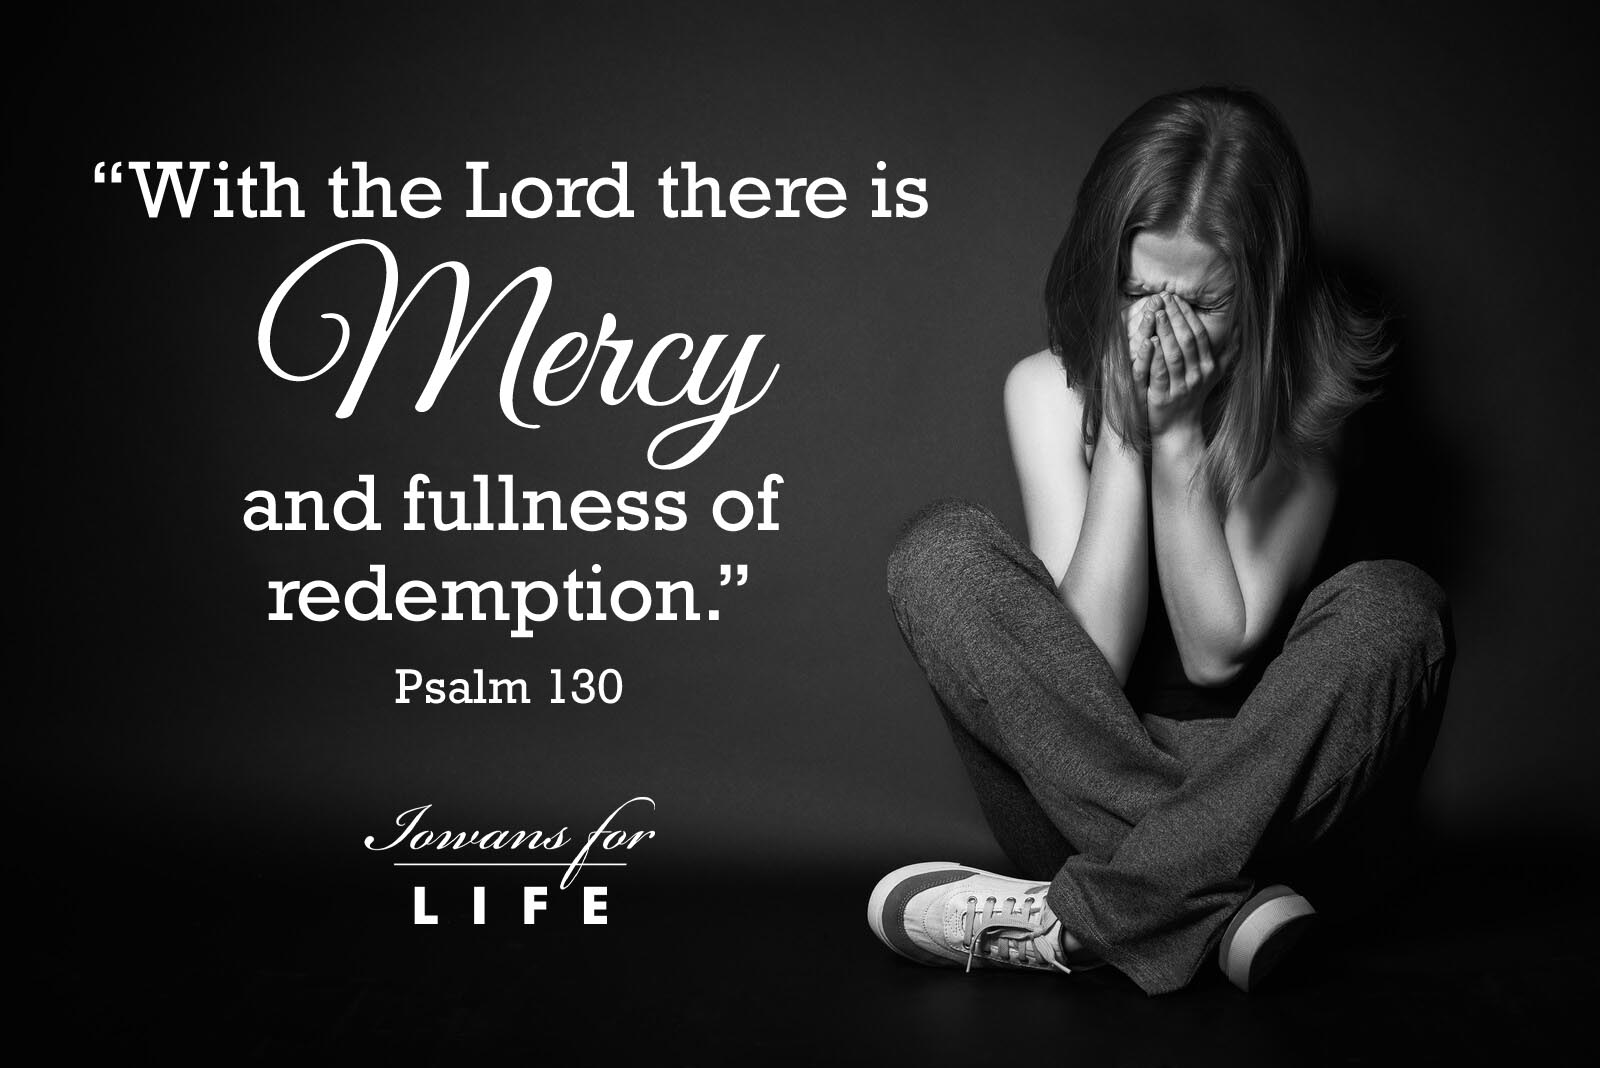 our merciful Lord